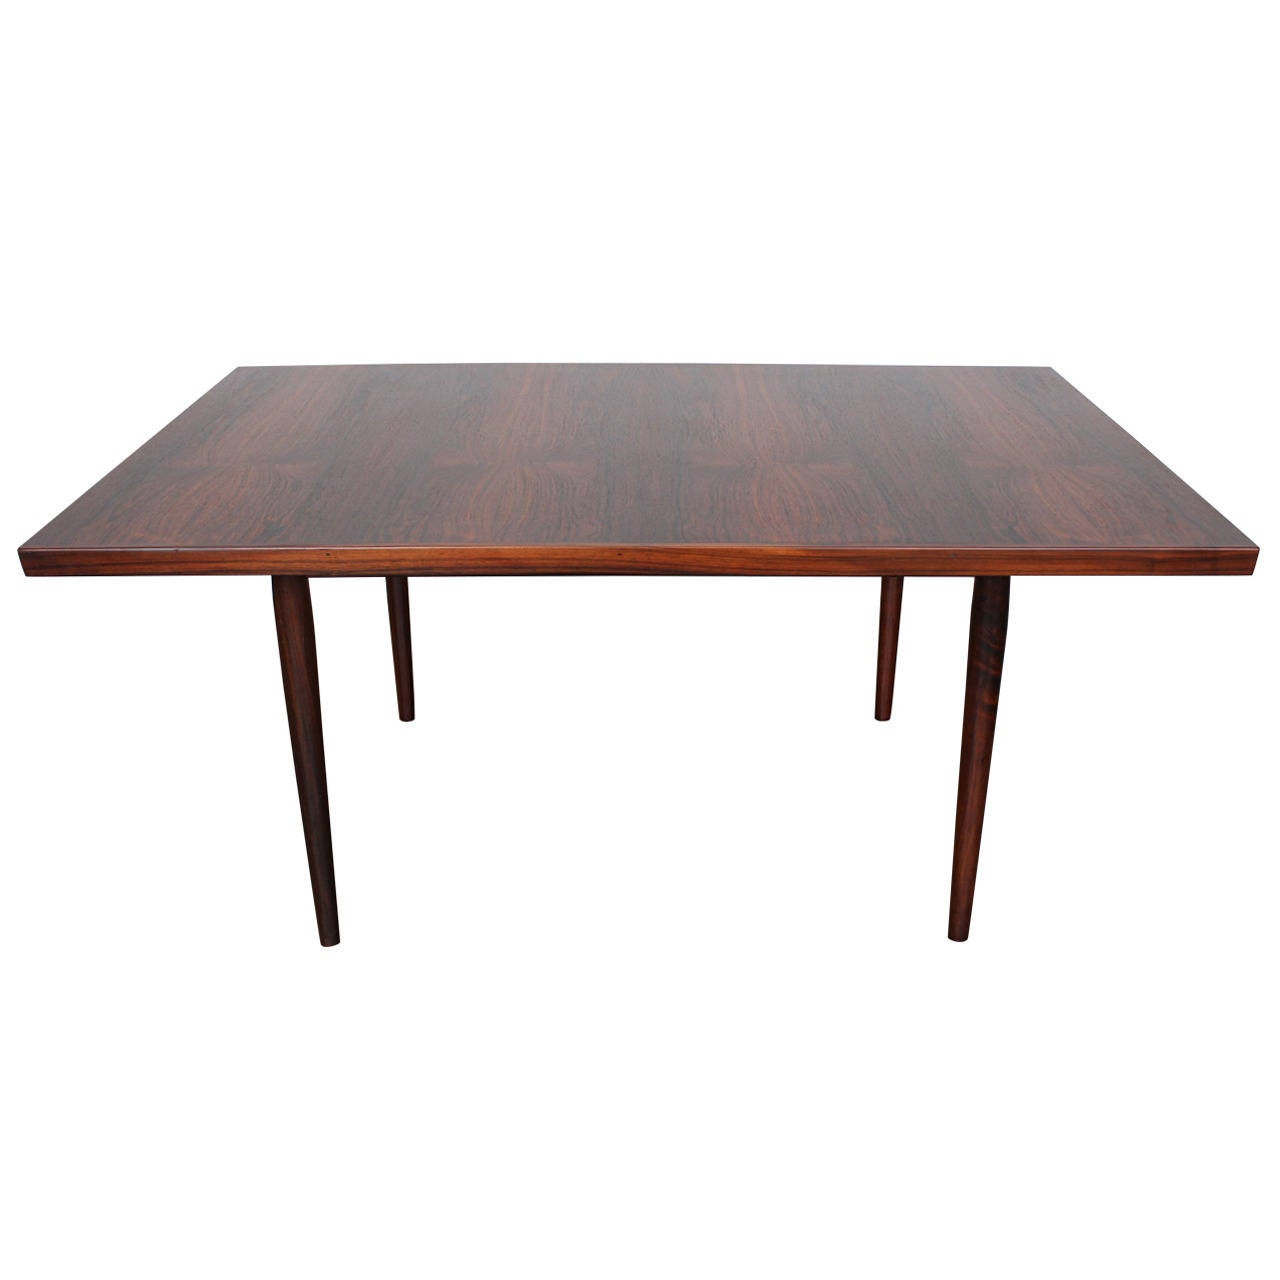 Mid century modern danish rosewood dining table for sale for Modern dining table